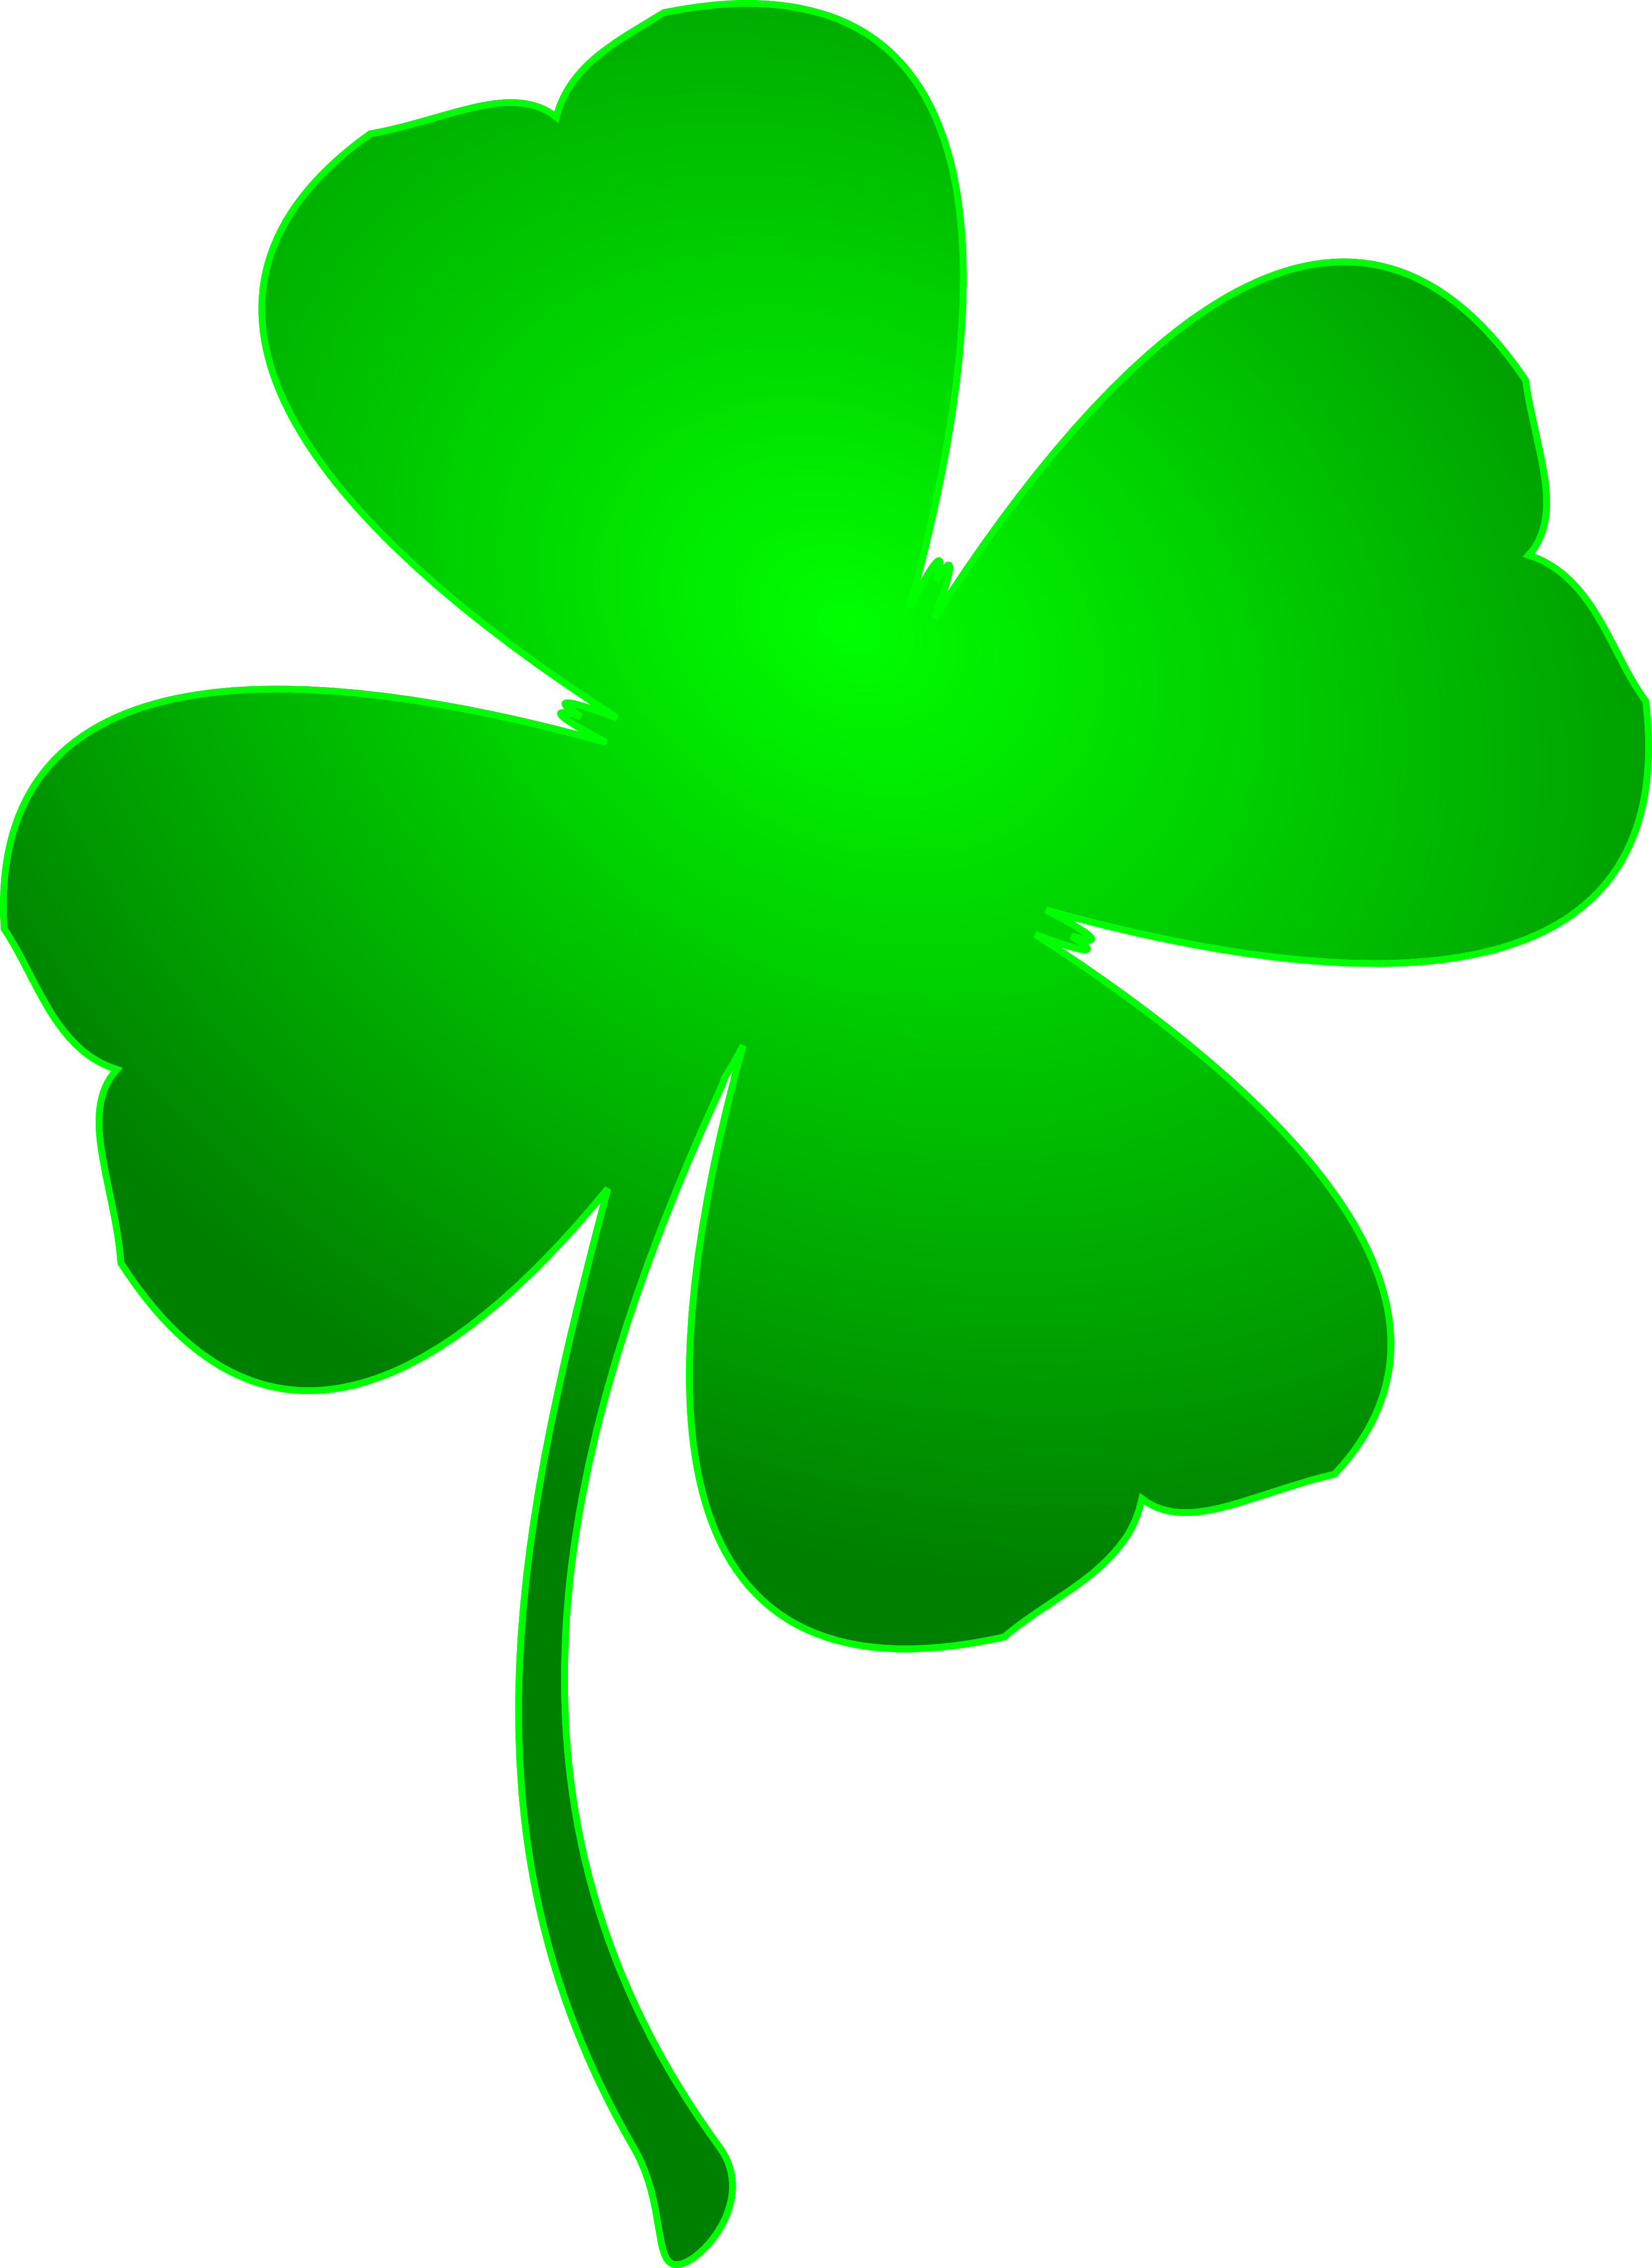 clip art royalty free library Clover HD PNG Transparent Clover HD